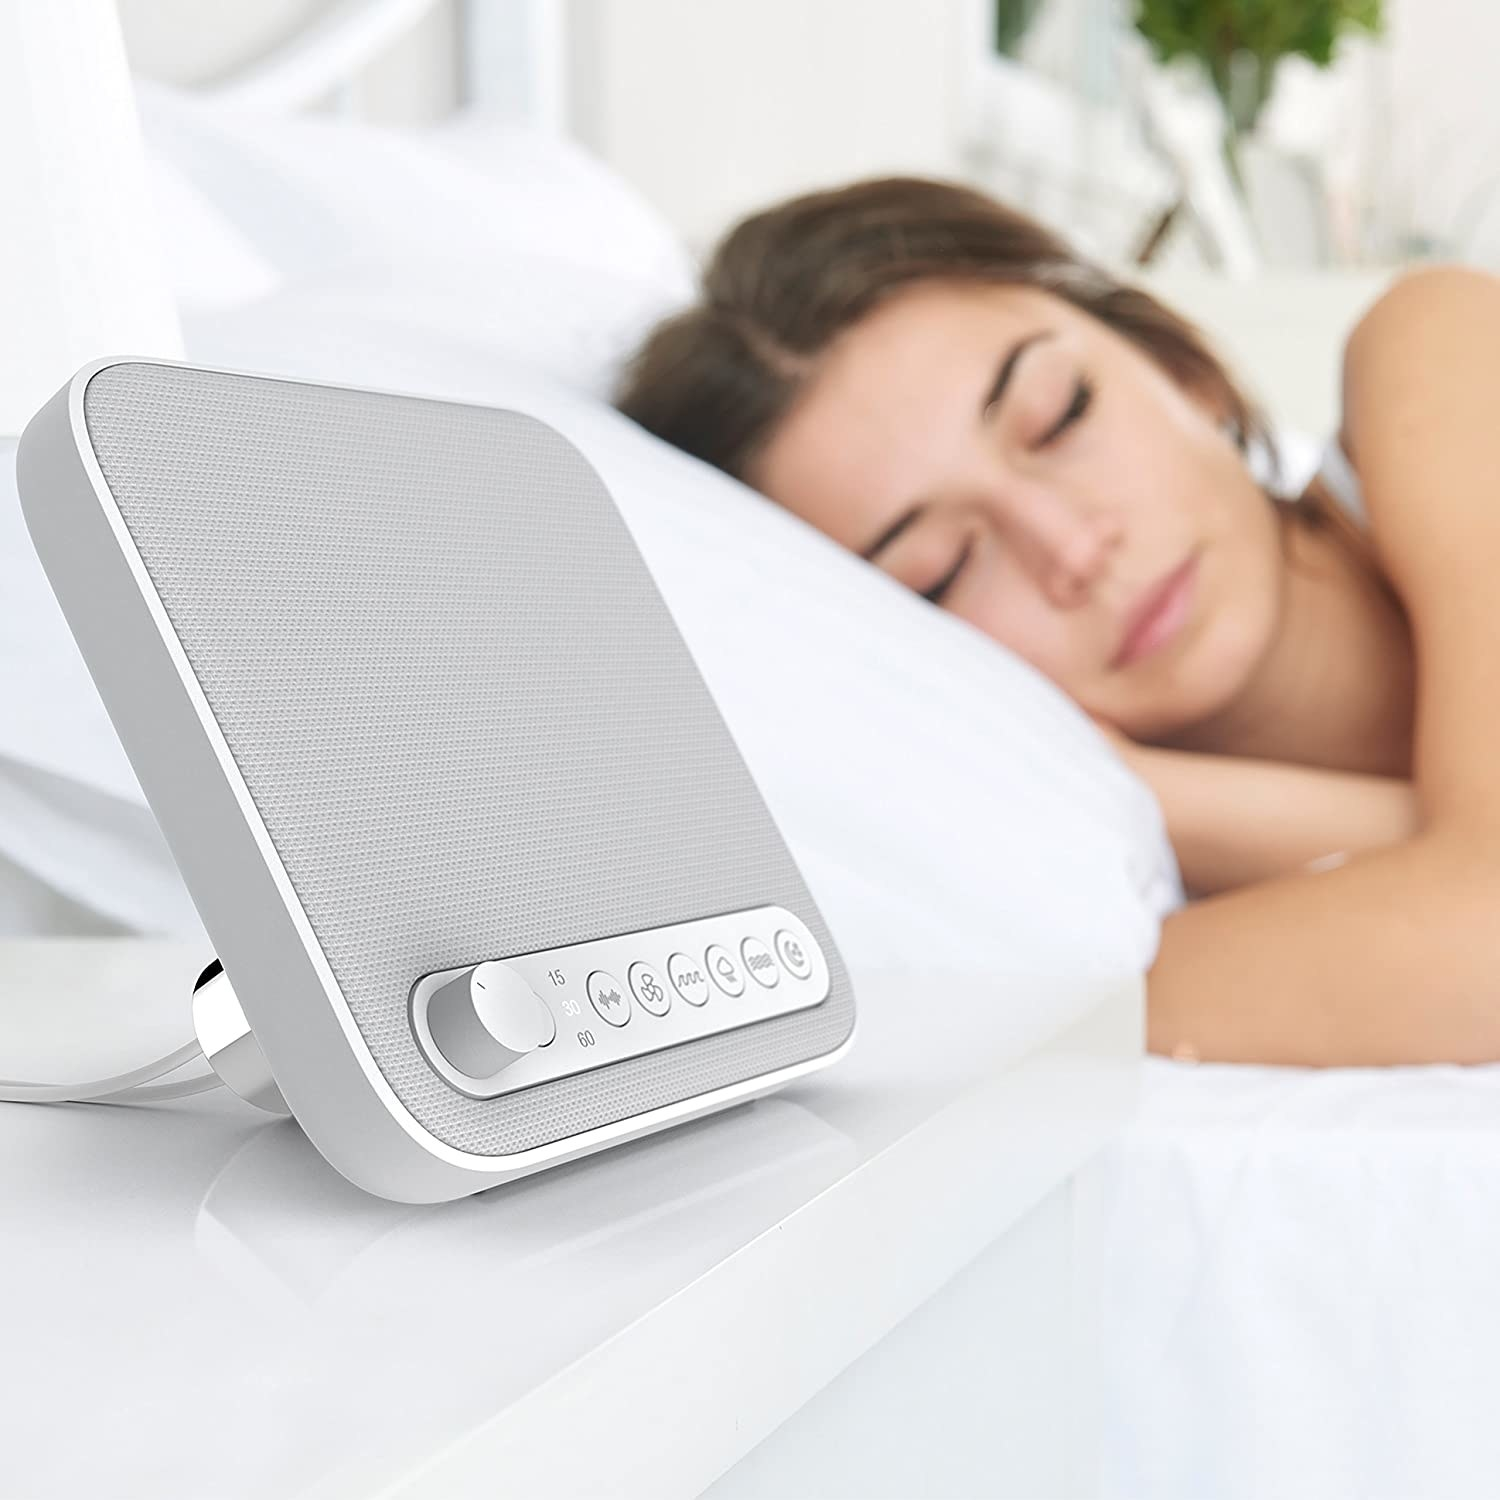 Sleep therapy sound machine placed on bedside table in front of sleeping model